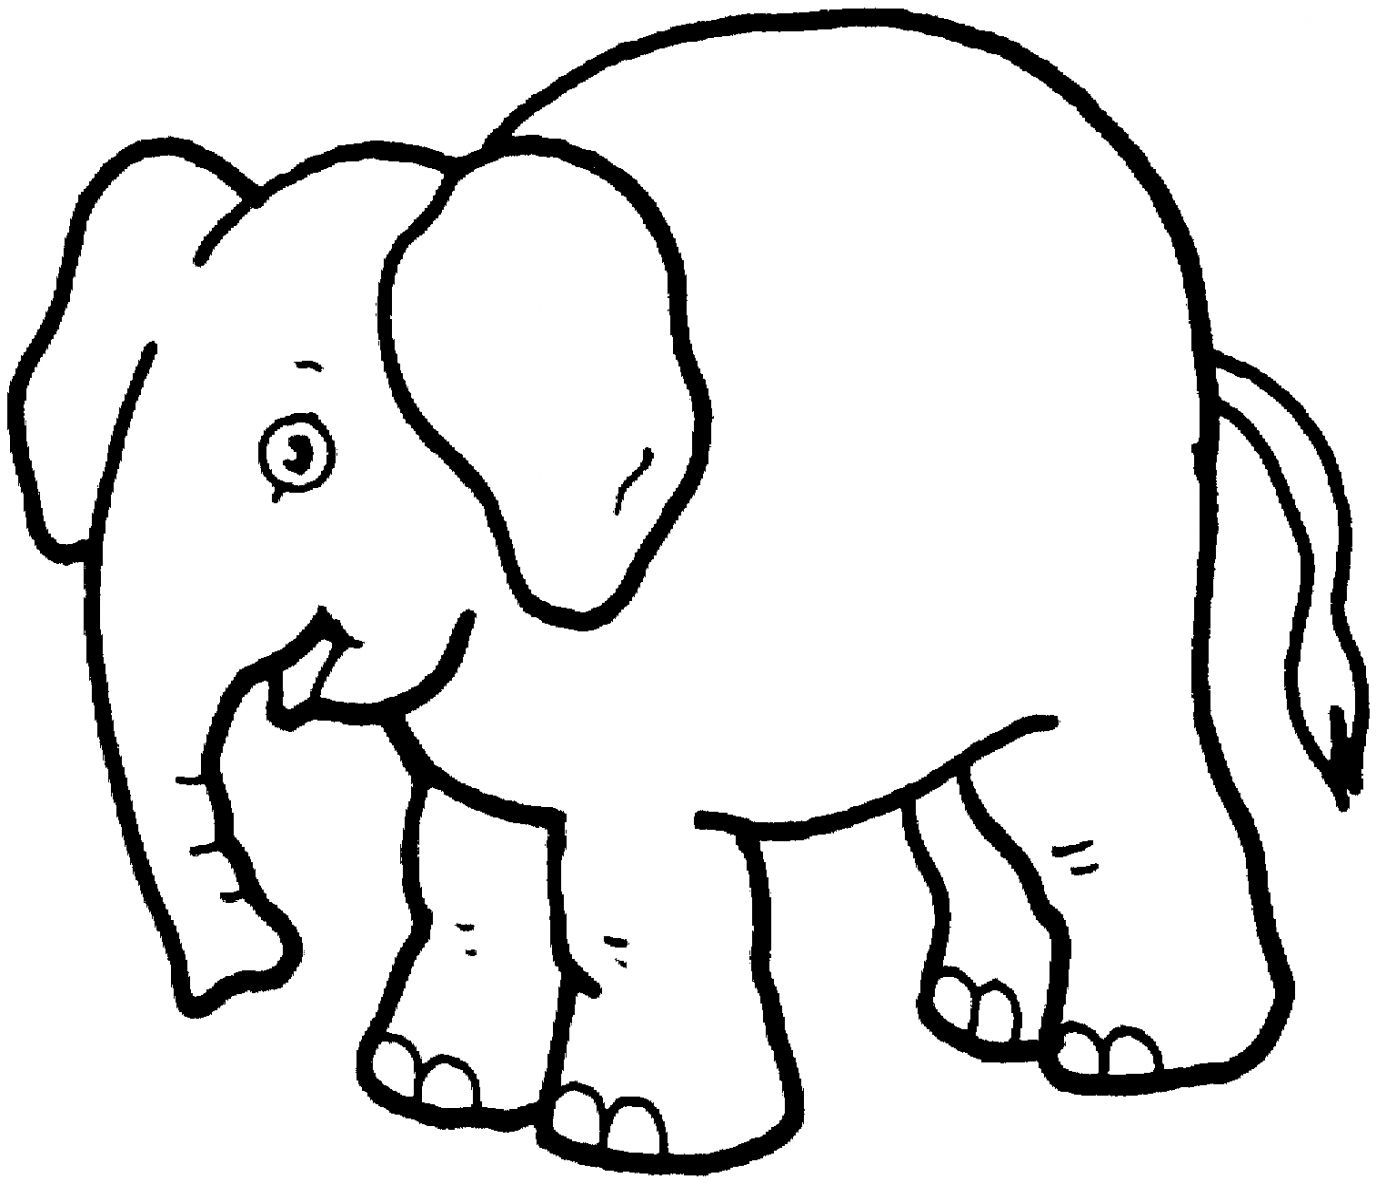 1376x1183 Elephant Black And White Clipart Wallpapers Warrior